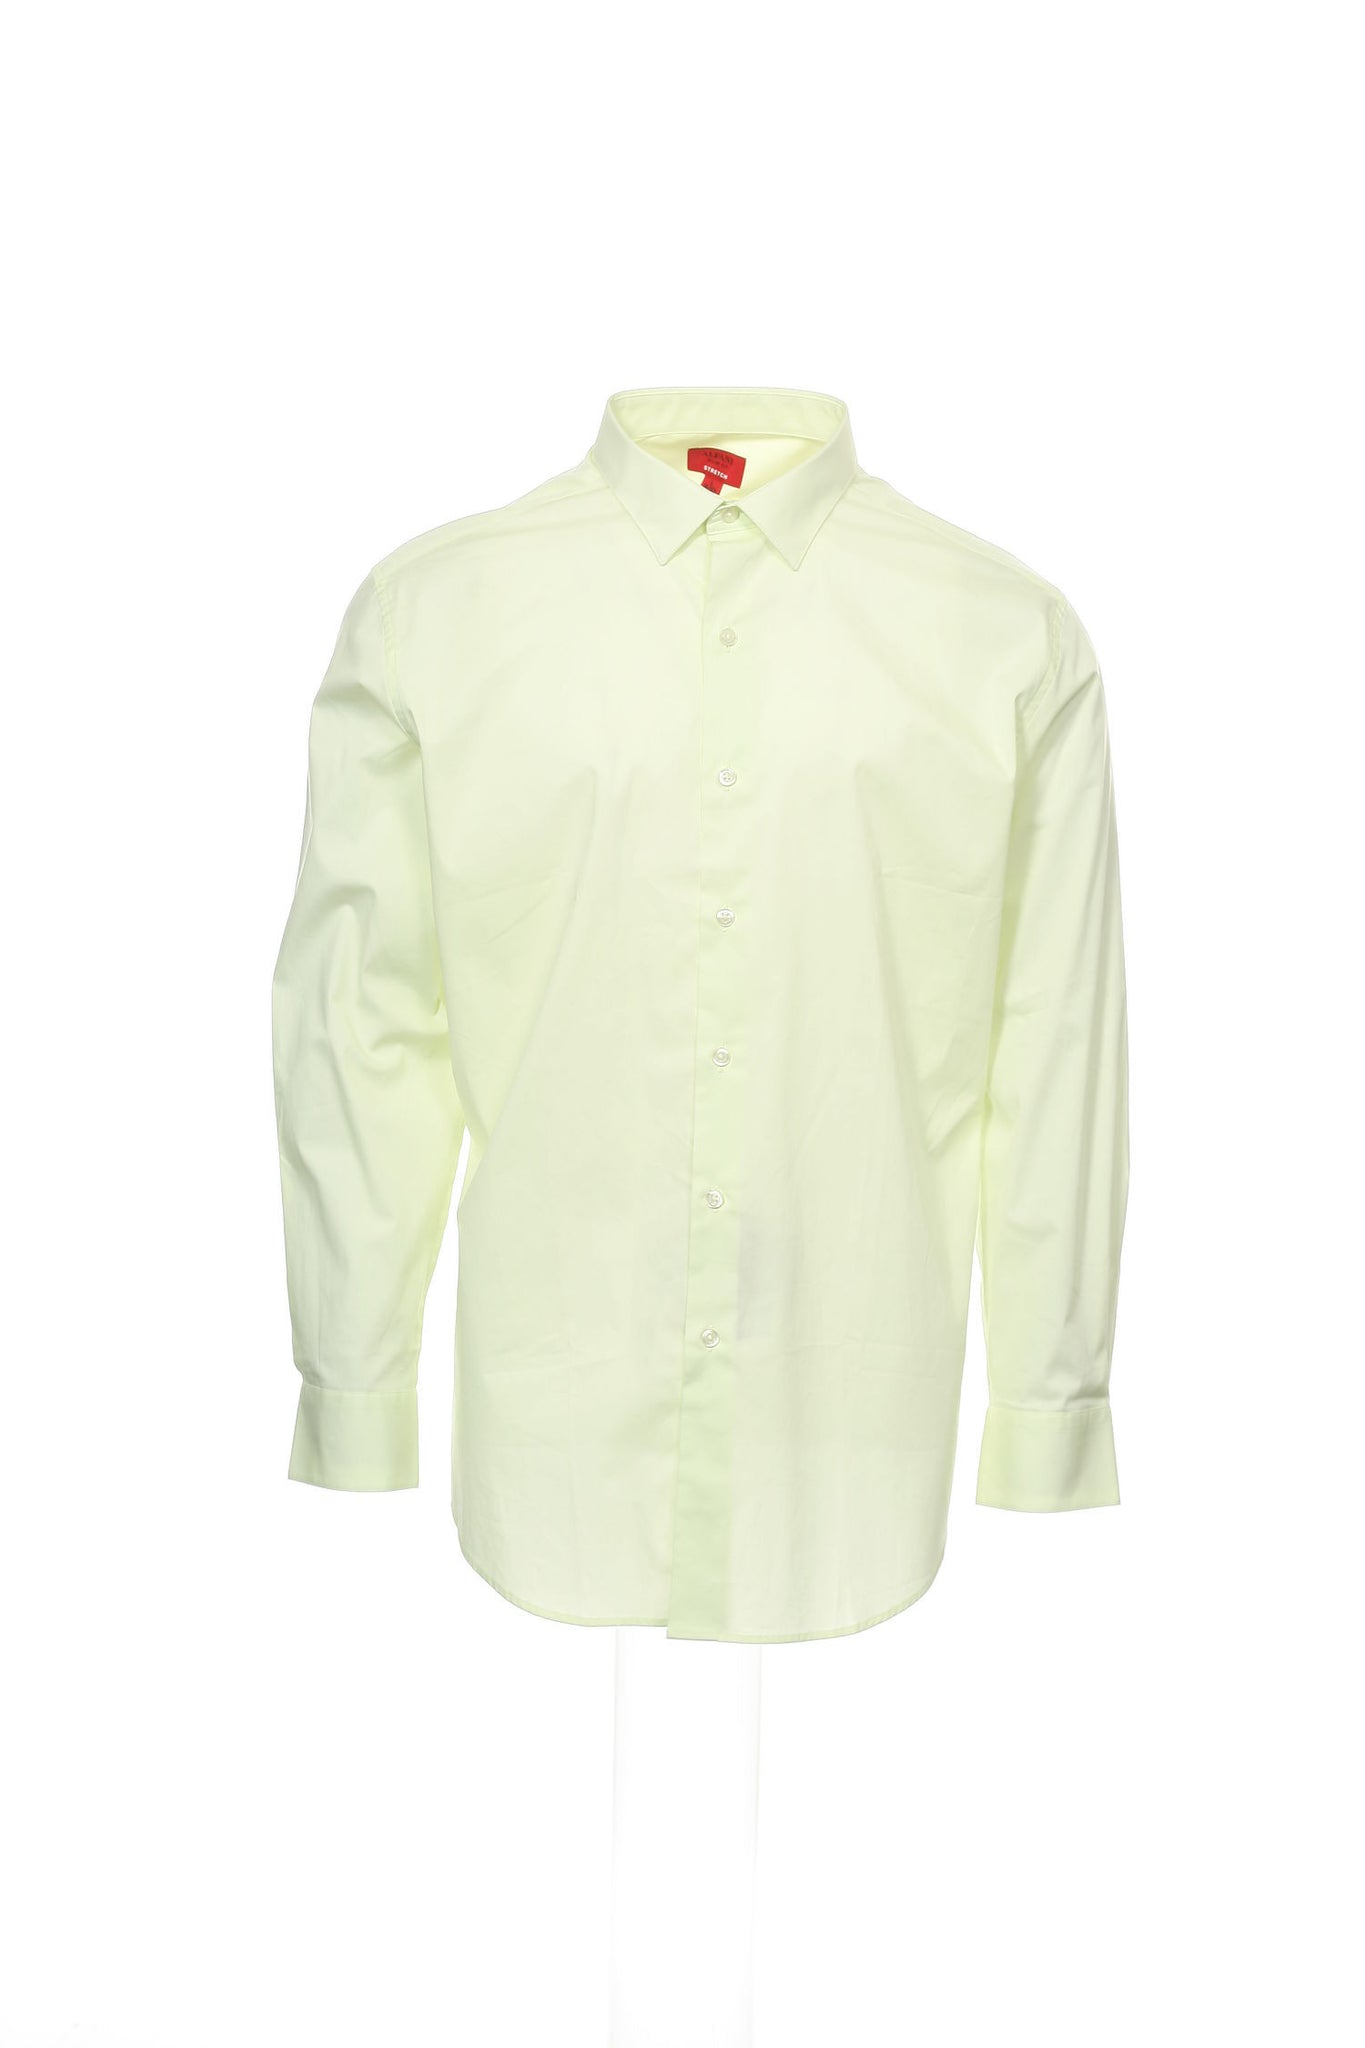 SPECTRUM by Alfani Mens Bright Yellow Button Down Shirt